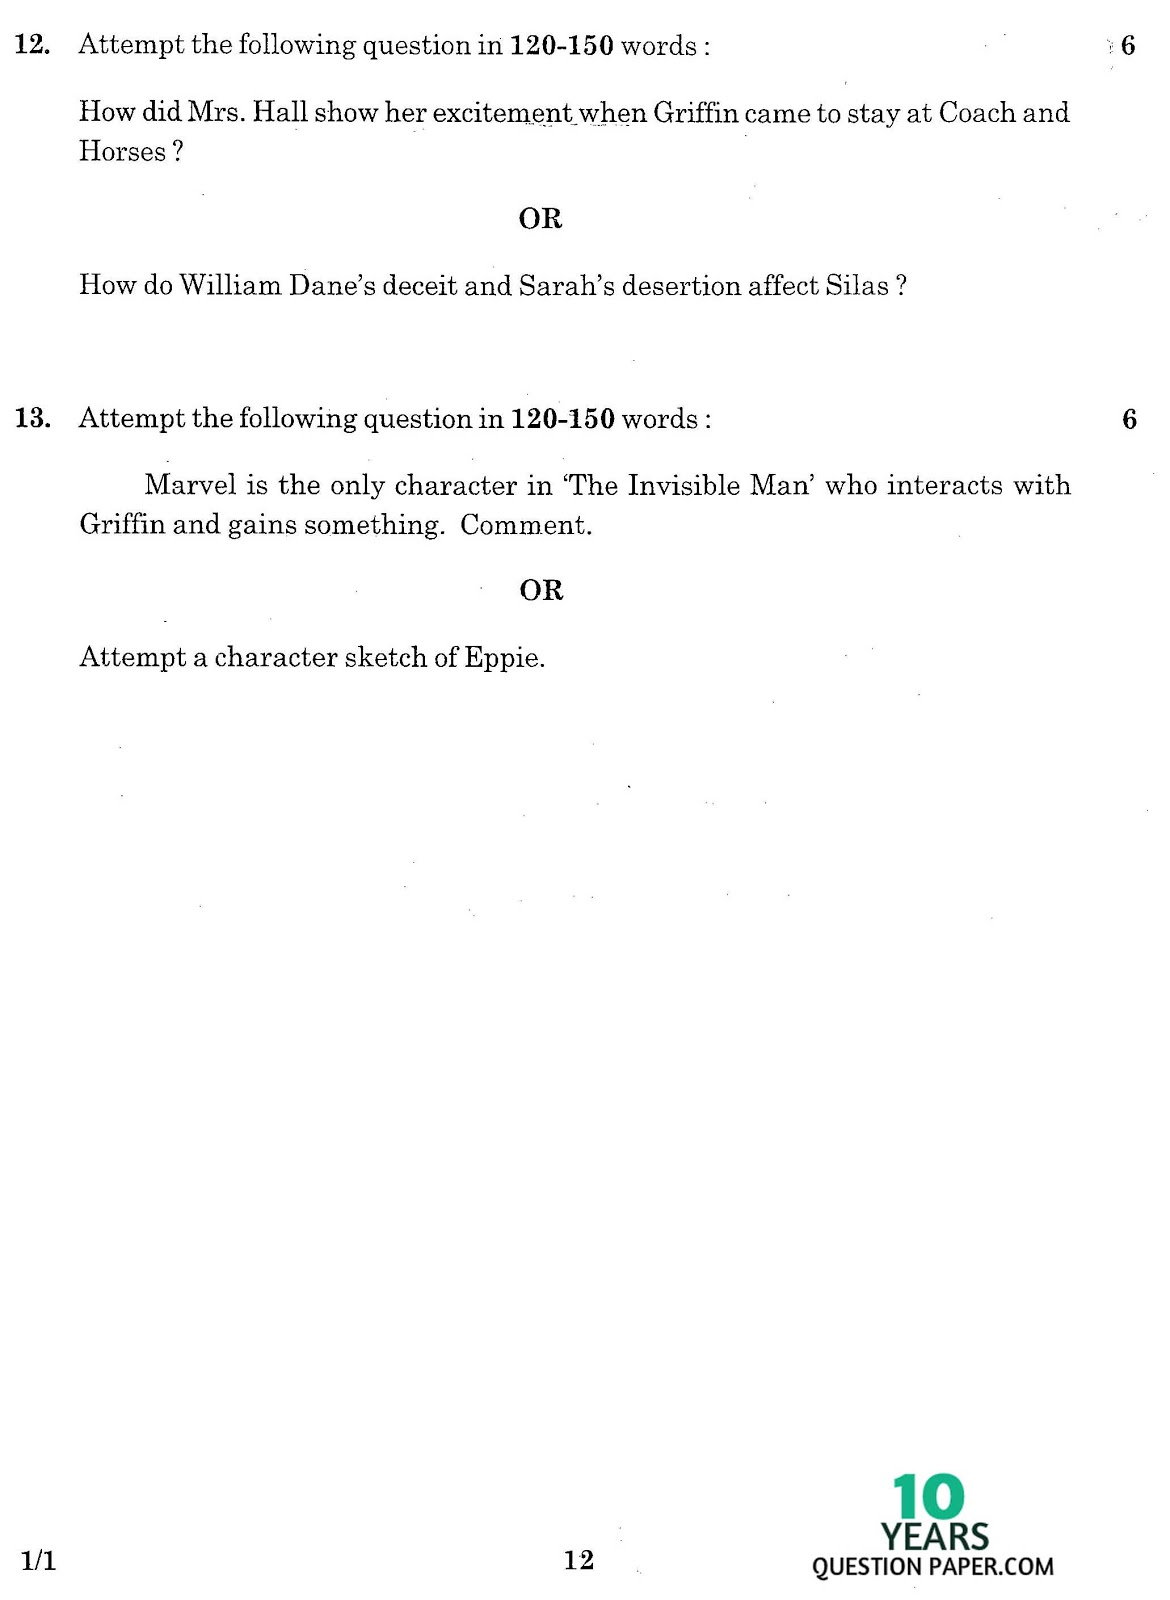 Bloomberg core exam questions essay